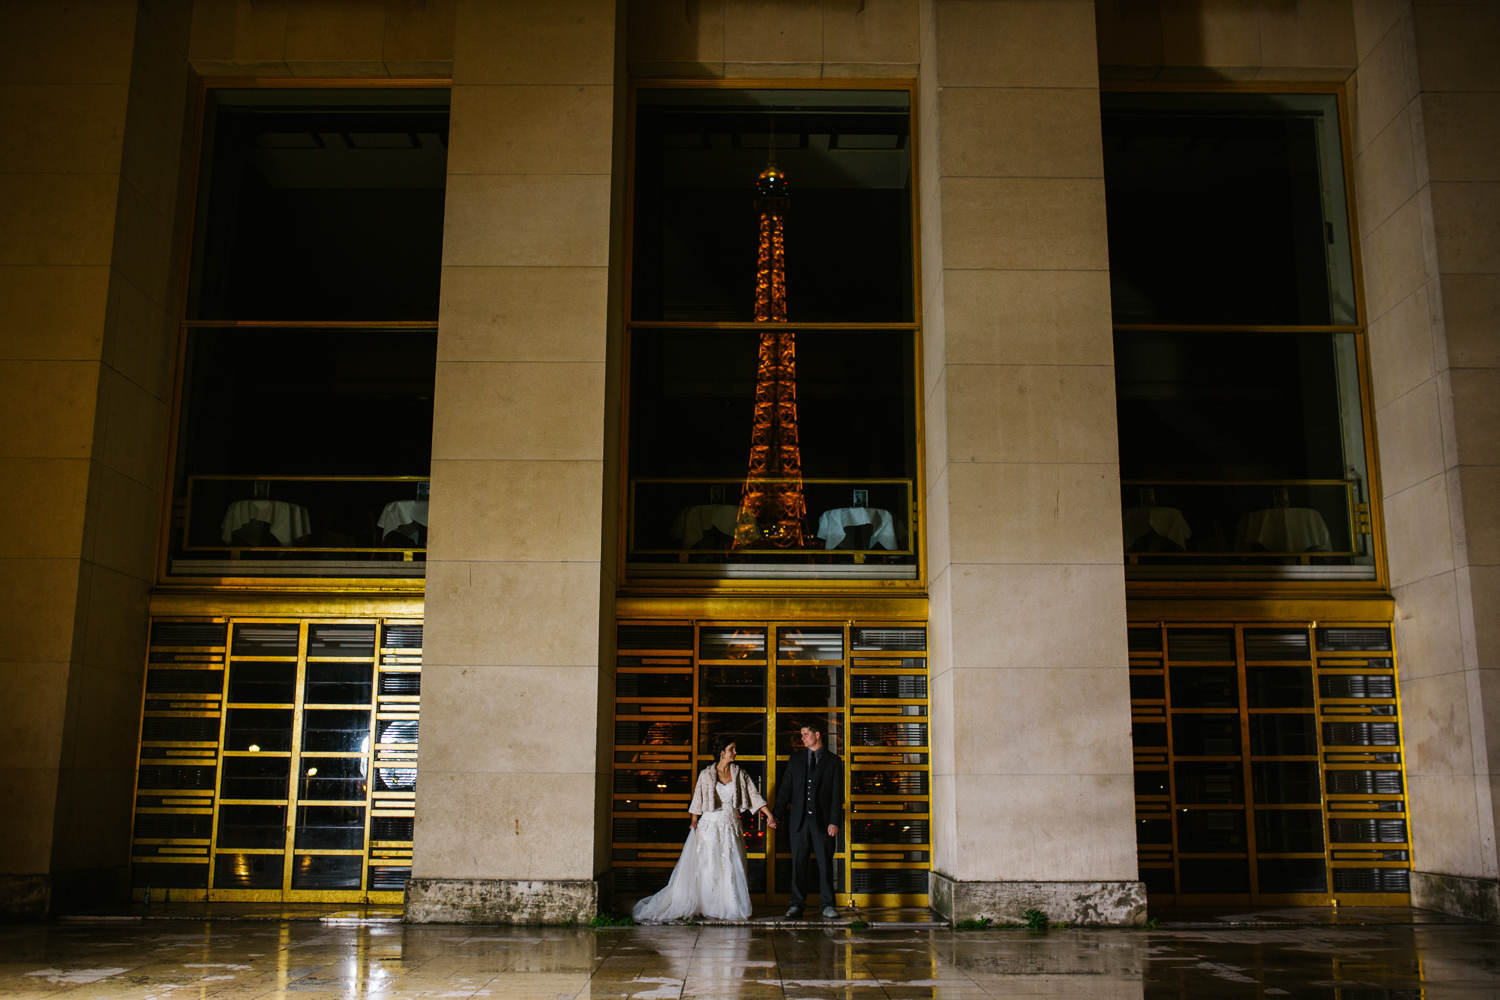 Chico-Wedding-Photography-Ranalla-Photo-Films-Wedding-Video-Wedding-Photographer-Destination-wedding-photographer-venice-wedding-paris-wedding-paris-night-eiffel-tower-15.jpg